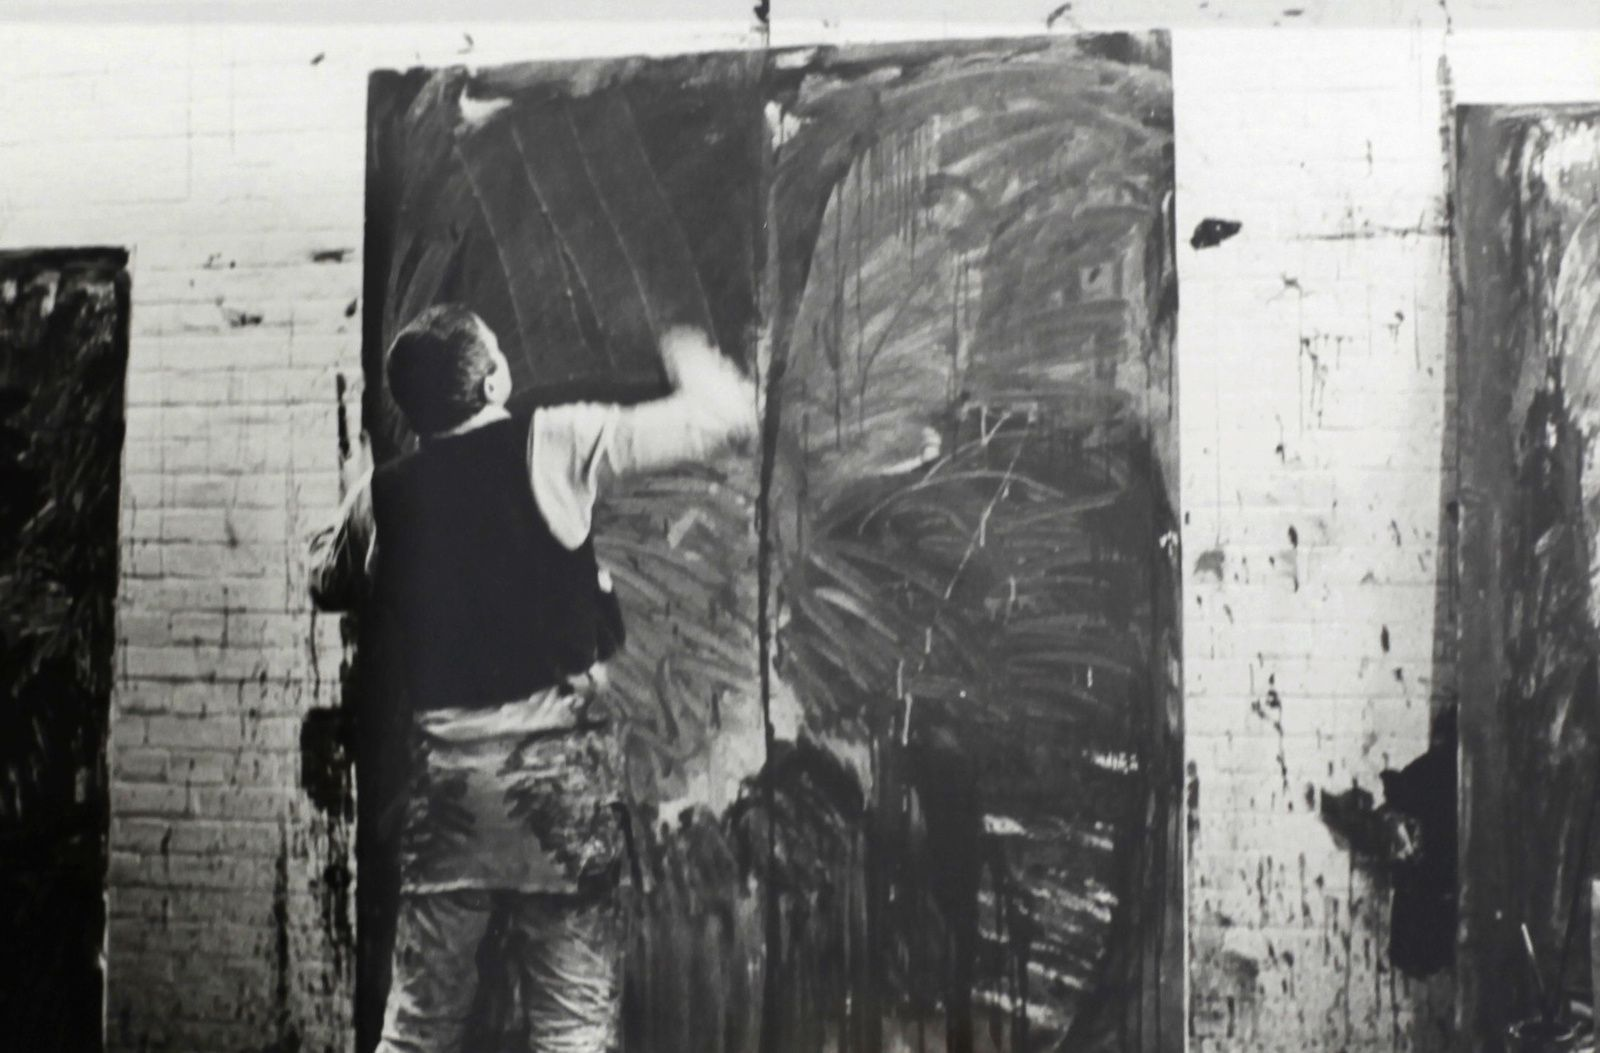 Atelier de Berlin 1977 Photo de Benjamin Katz